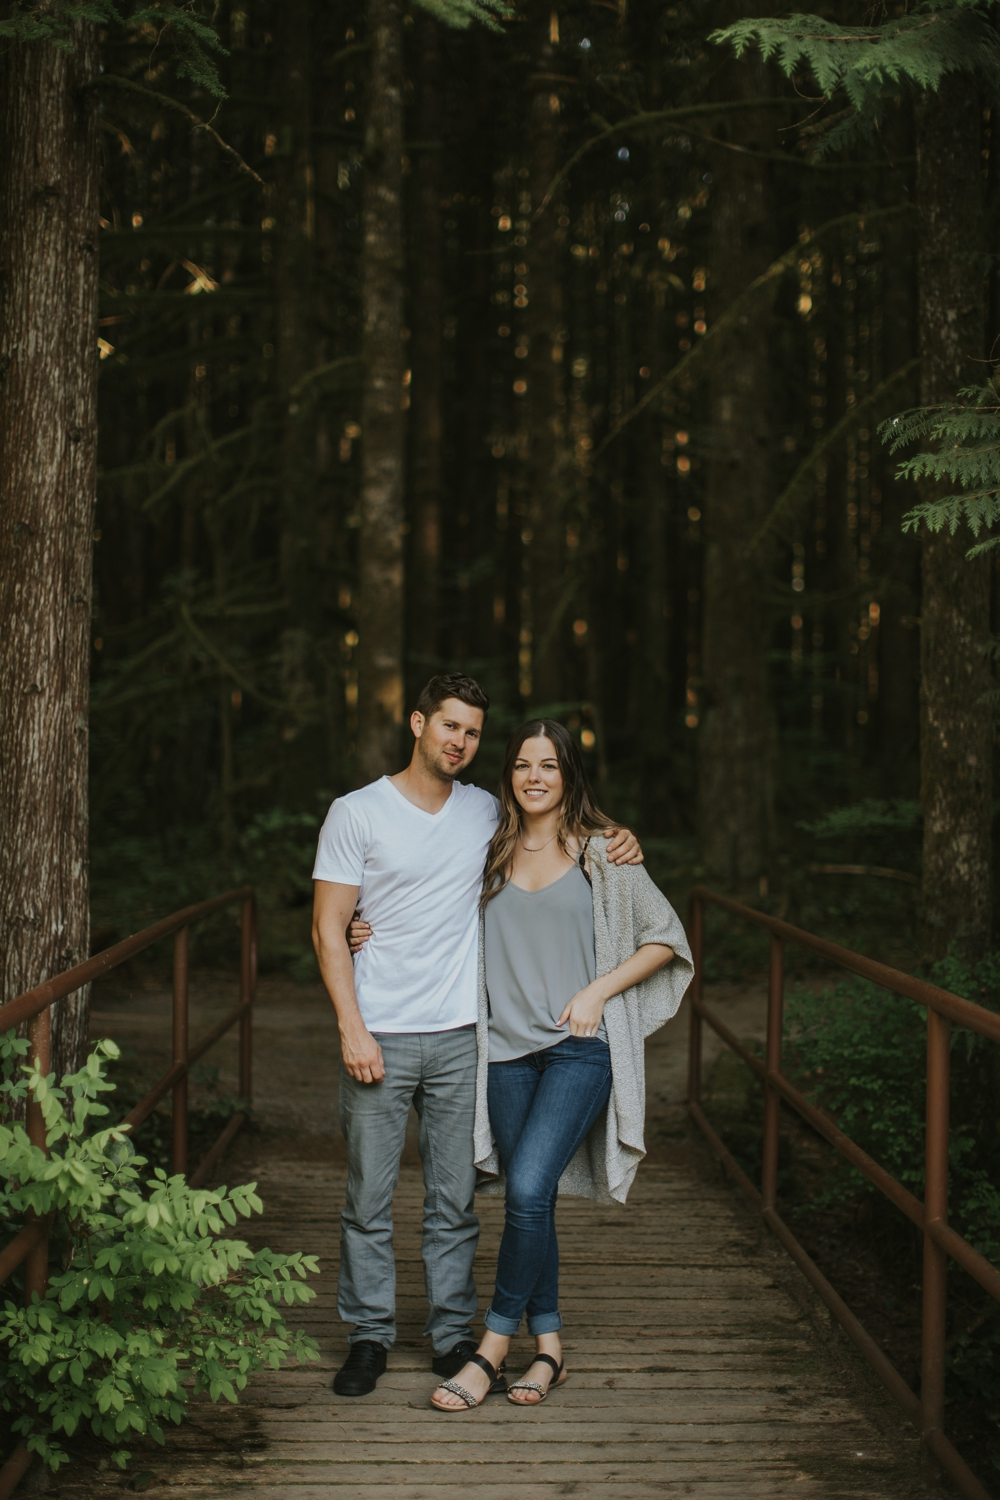 Danielle-Kevin-Engagement-Danaea-Li-Photography-Forest-0038.jpg